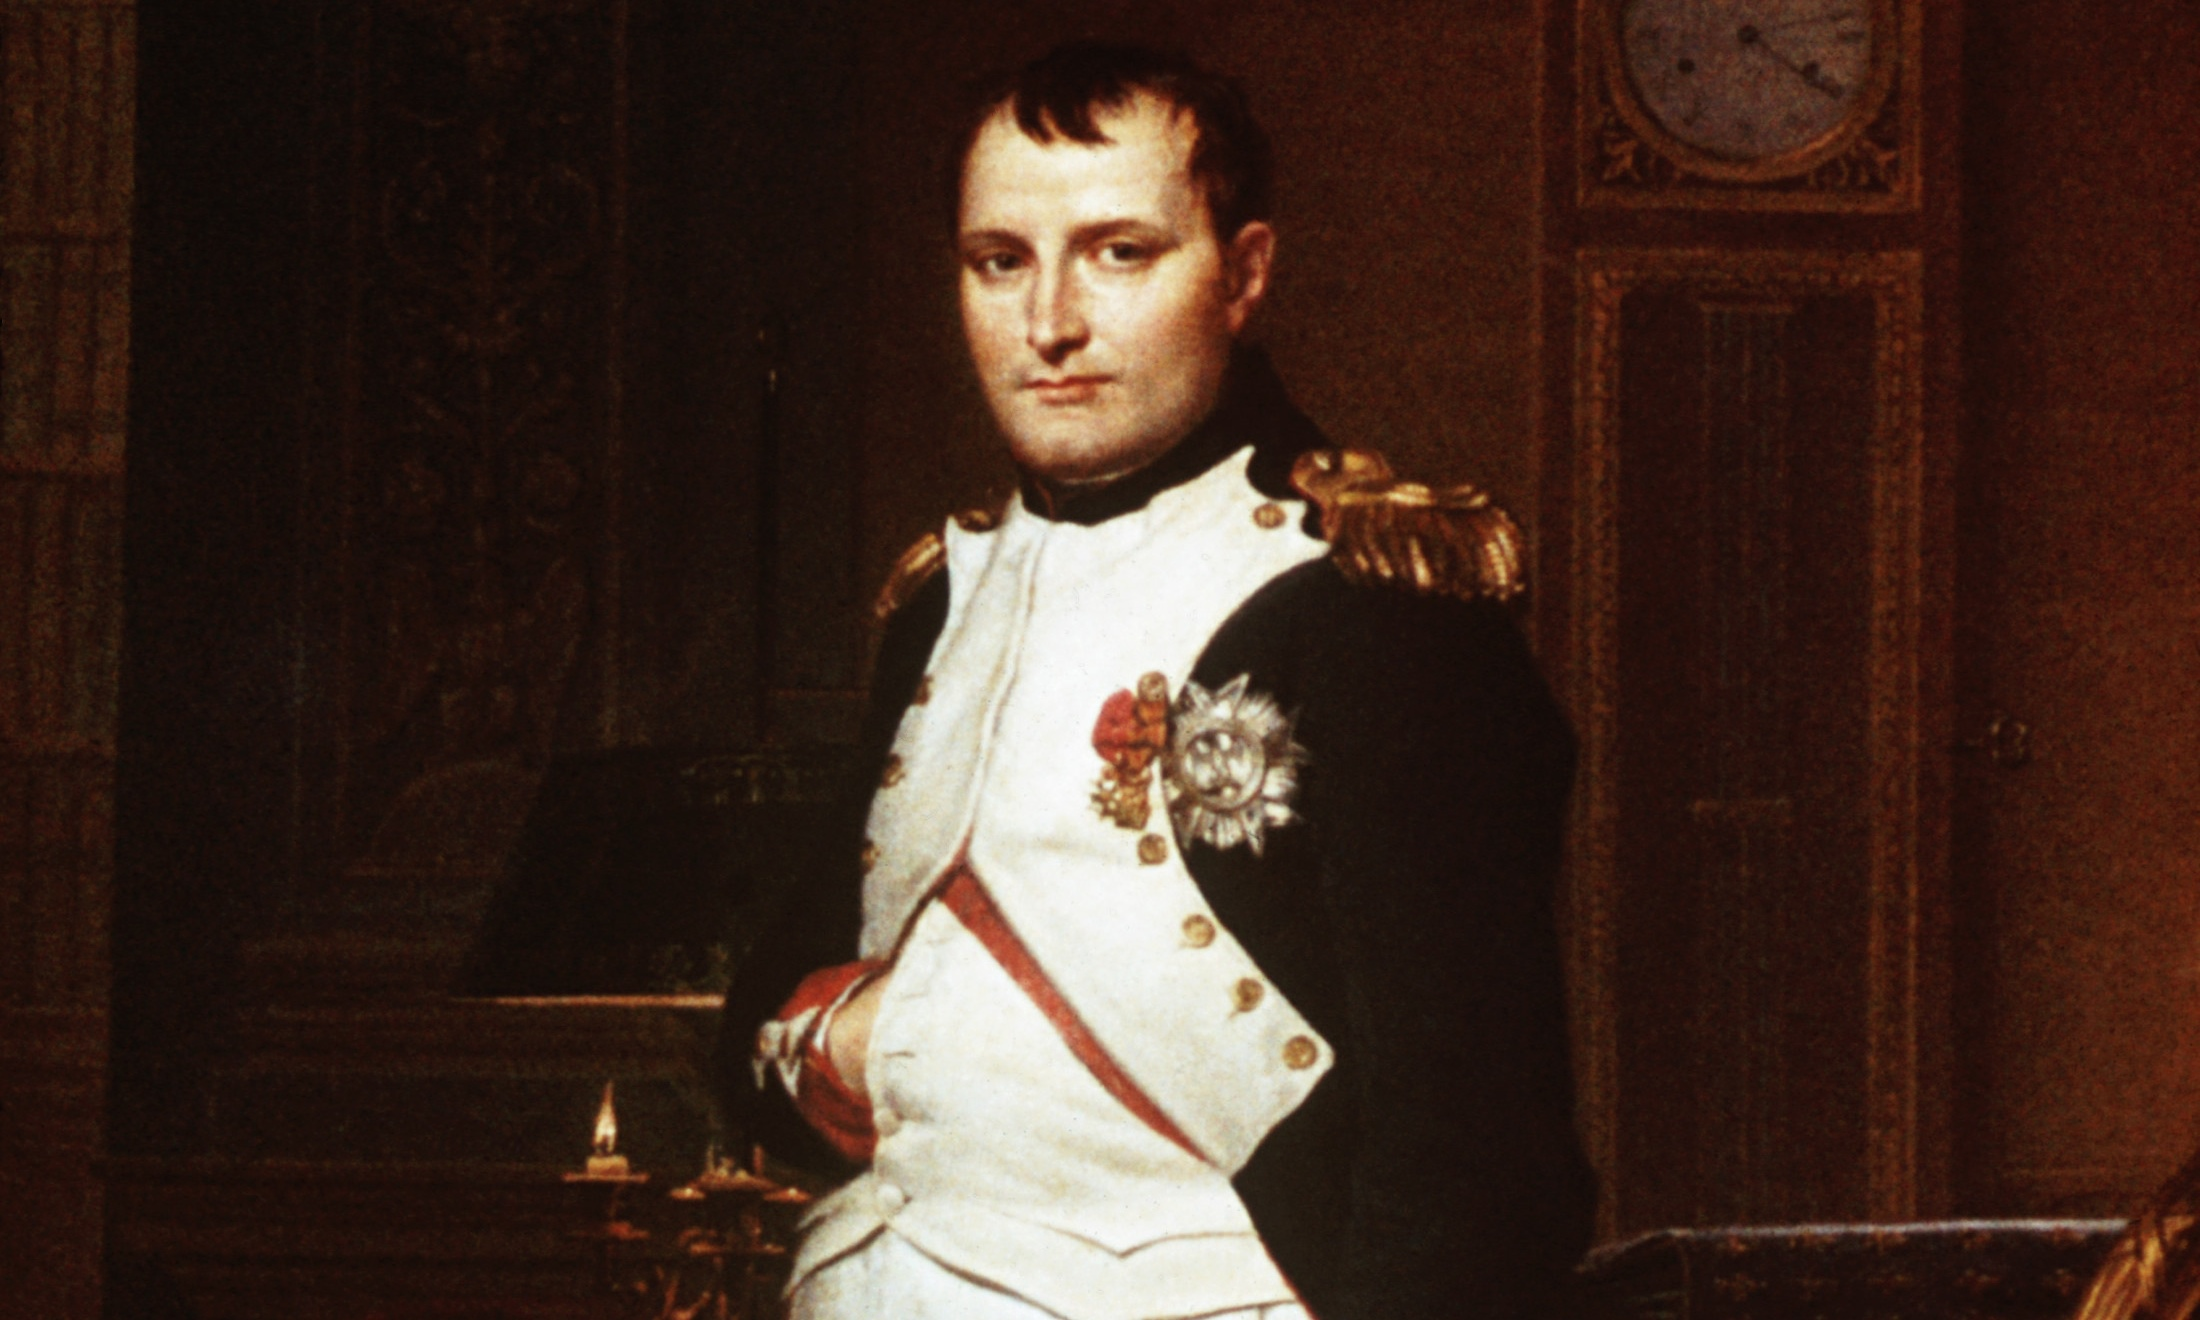 a biography of napoleon bonaparte and his achievements for france Between 1799 and 1815 the fate of france and europe was in the hands of   napoleon bonaparte was a corsican and also an officer of artillery - an   however, the achievements of the revolution were continued with.